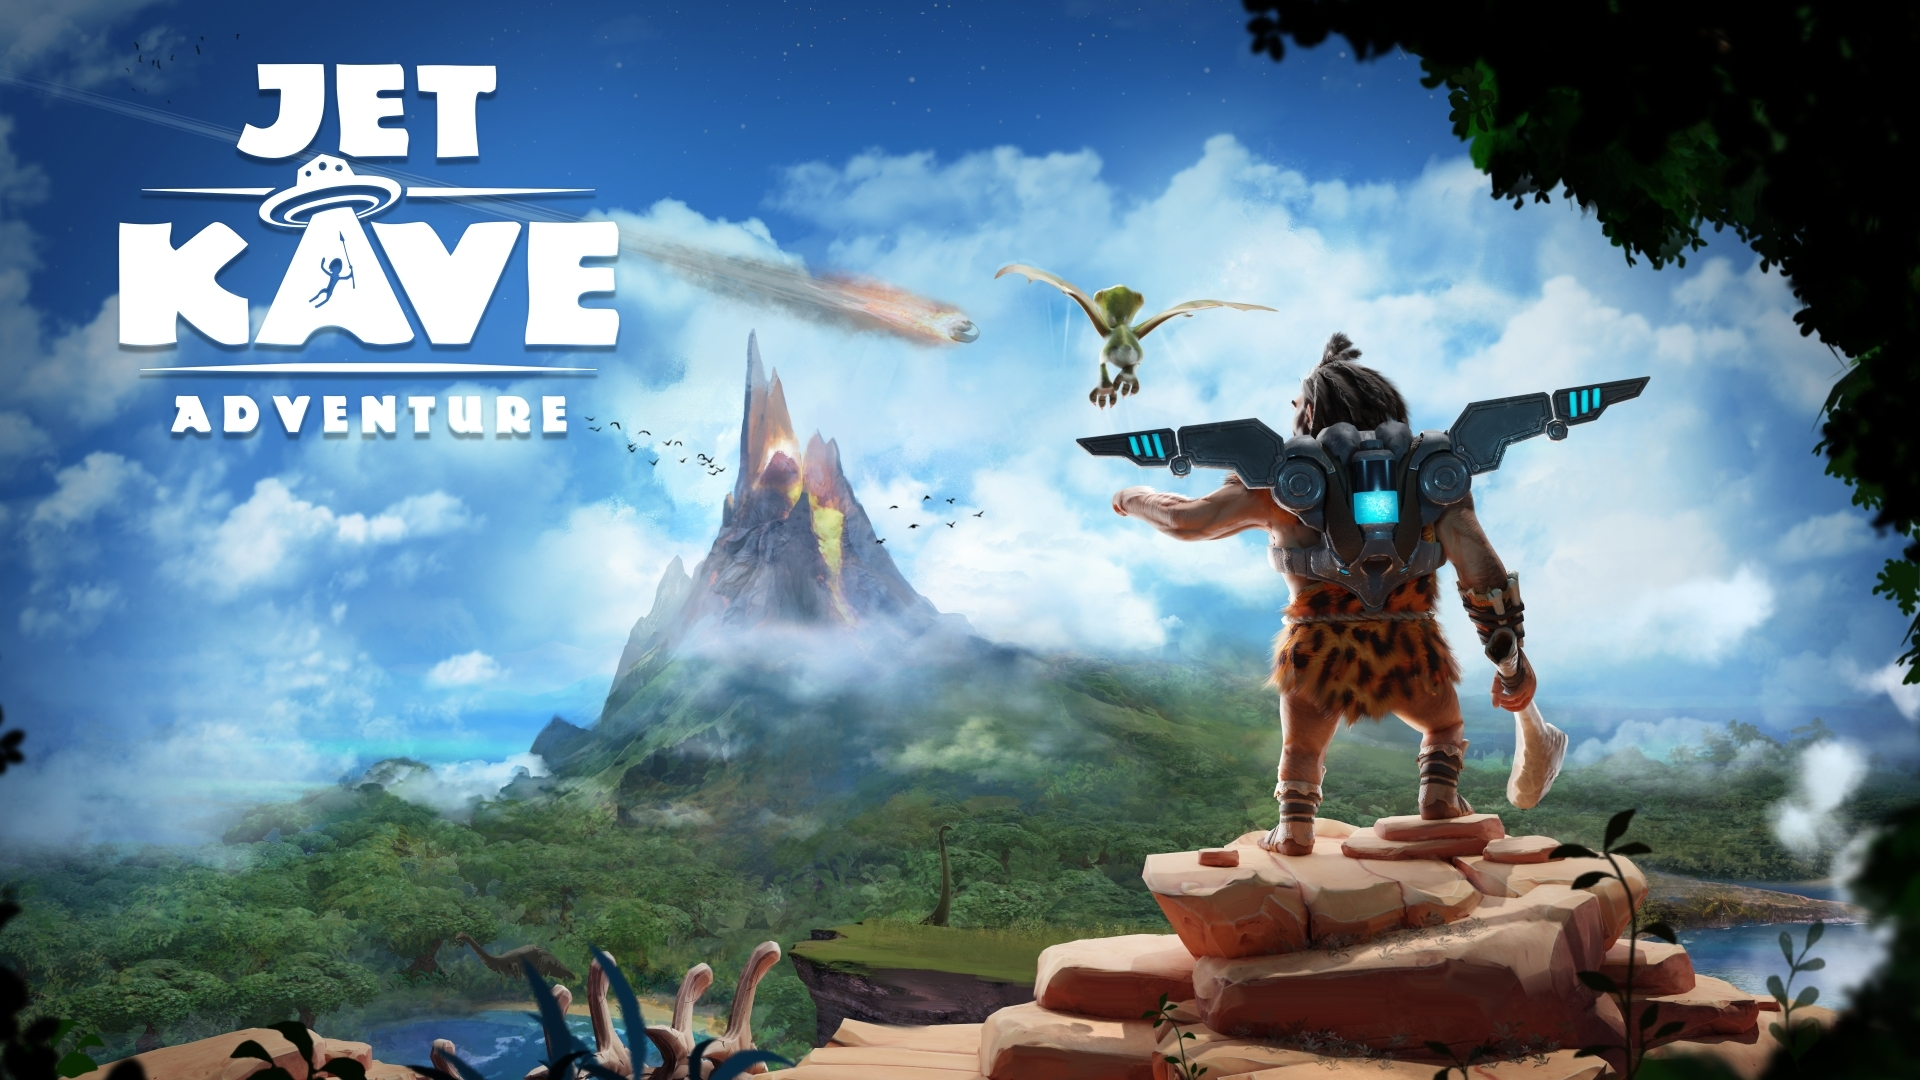 Jet Kave Adventure Launches On PC And Xbox Consoles On January 15